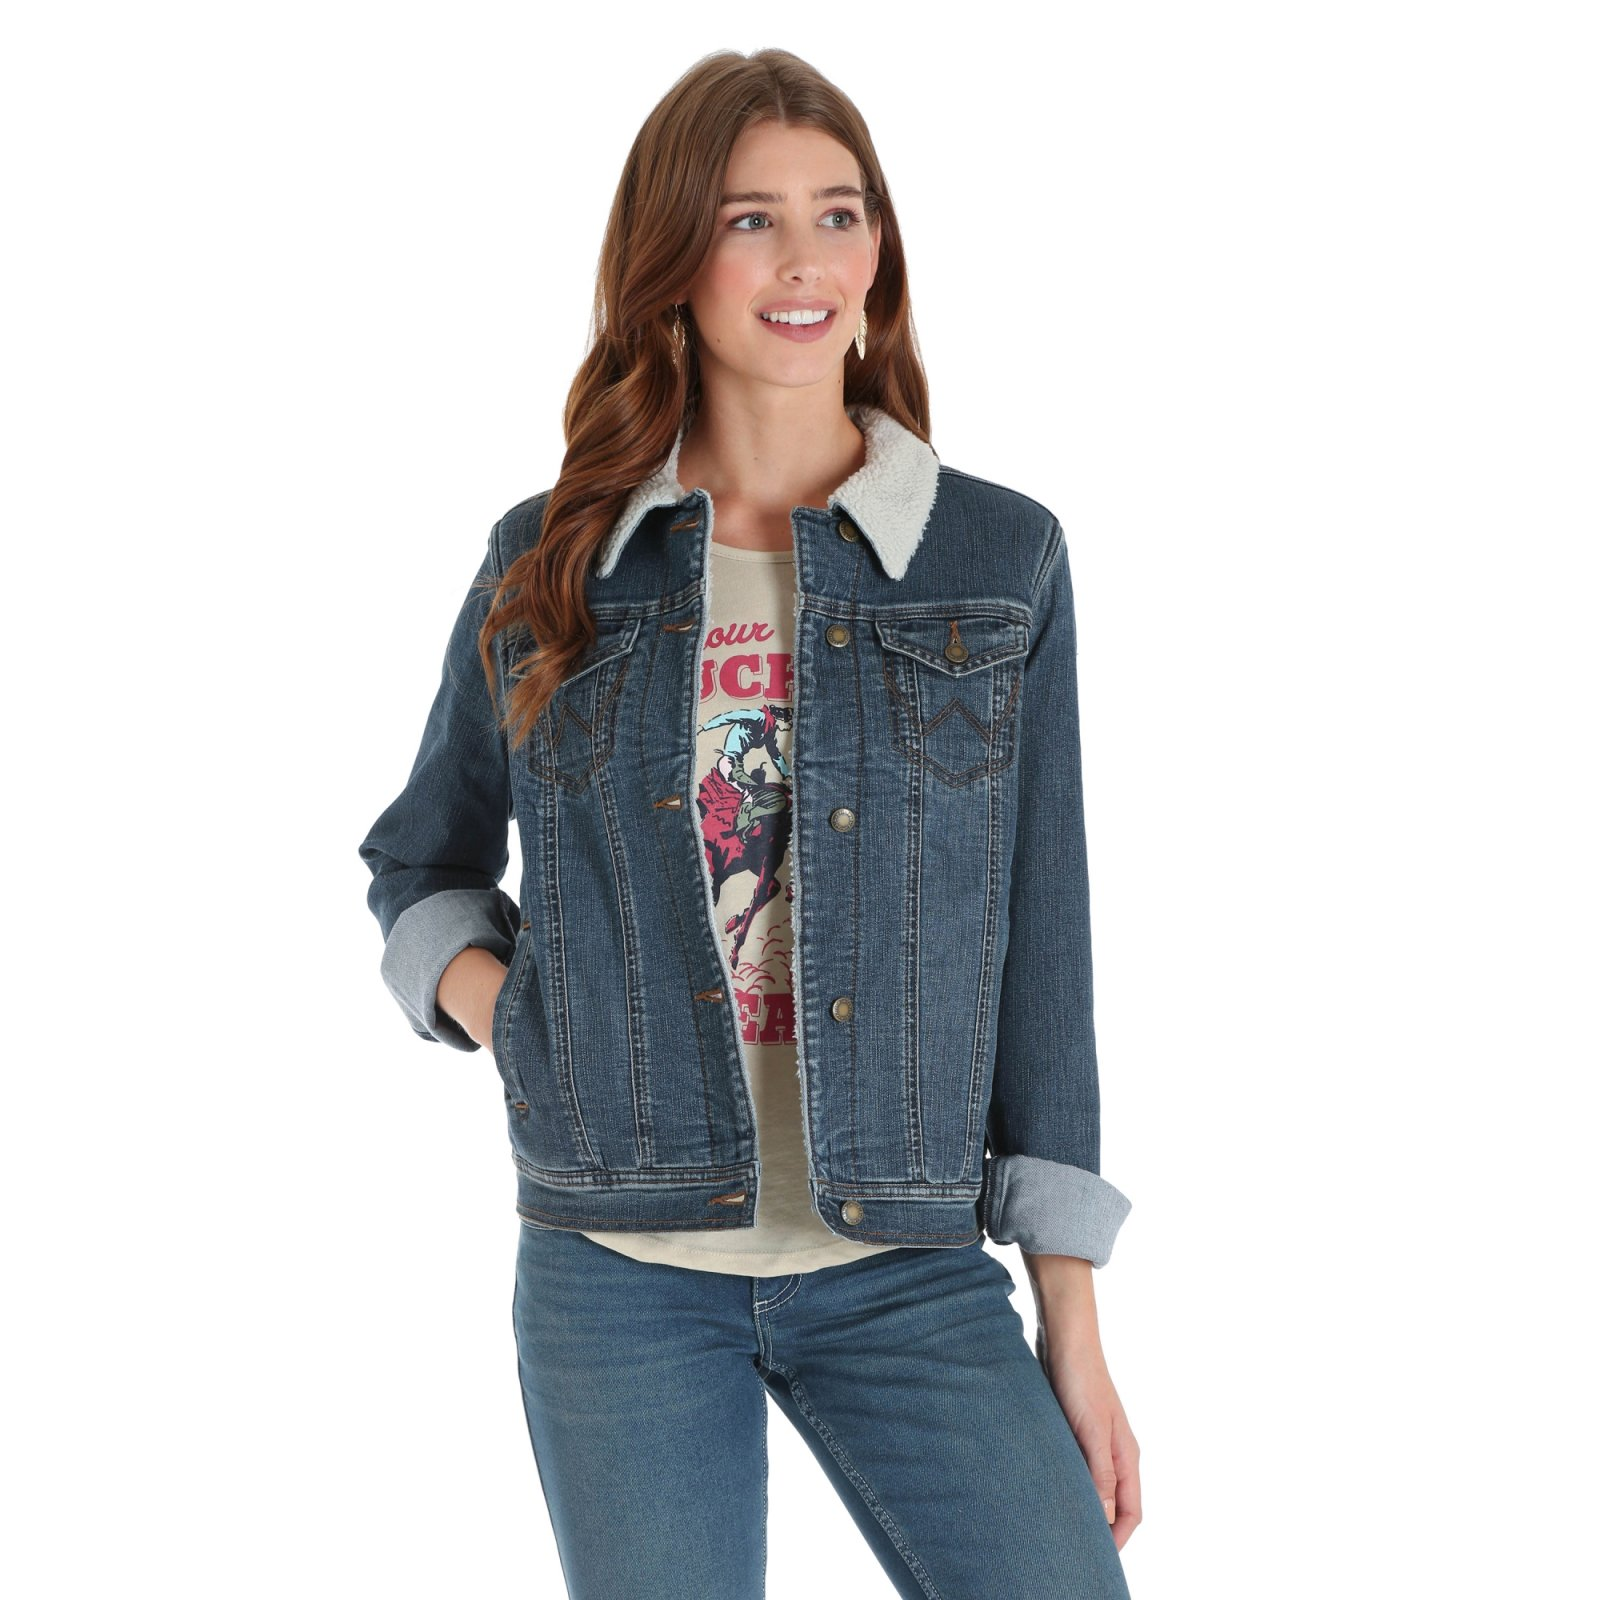 Sherpa Lined Denim Jacket from Wrangler